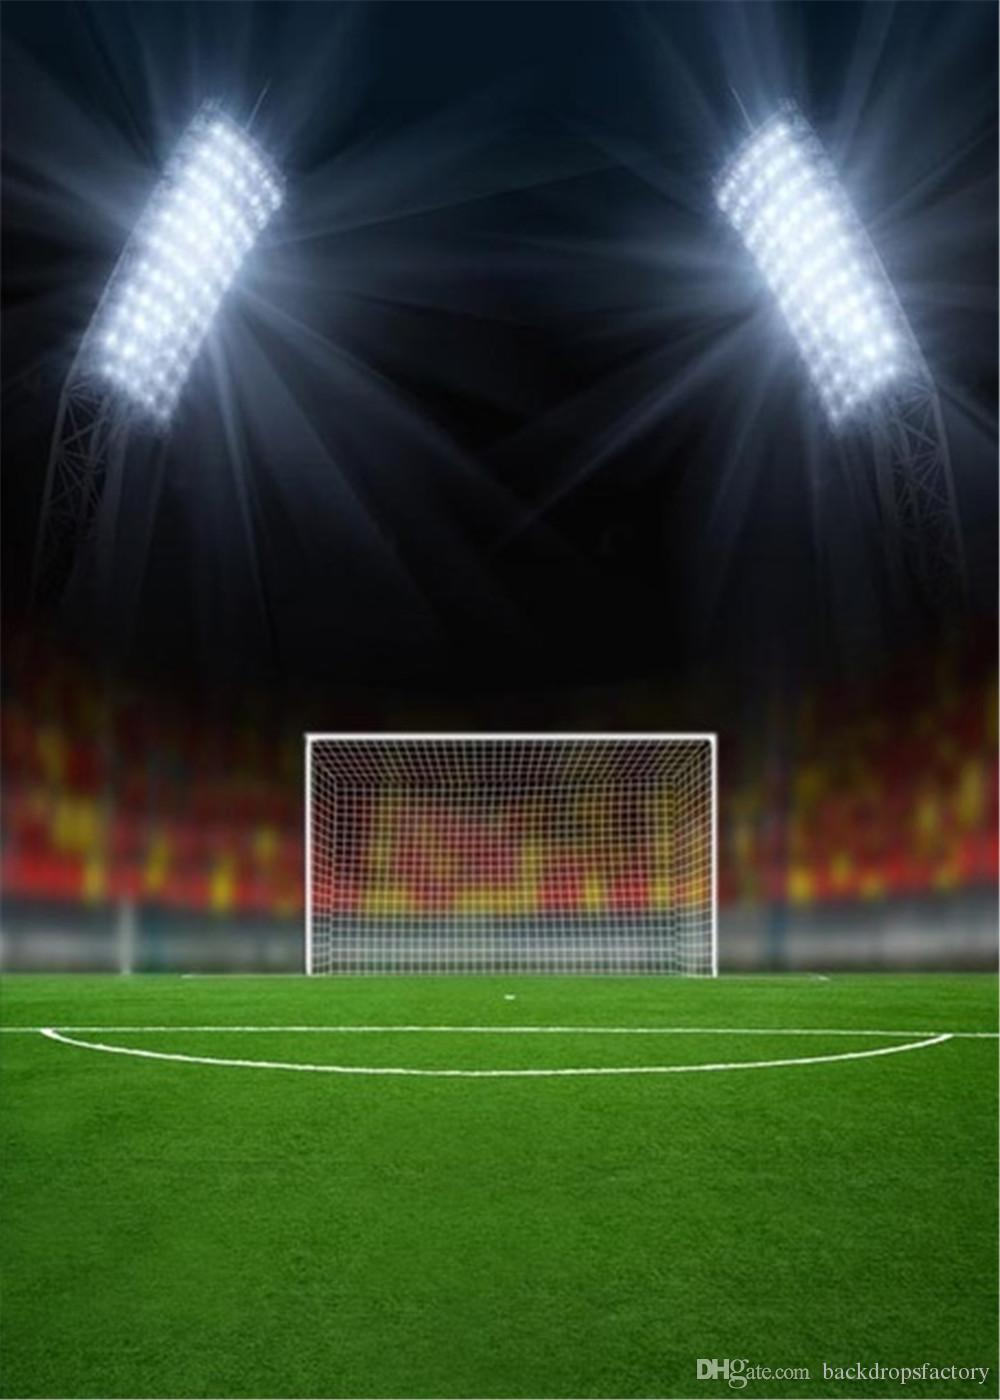 2019 Sports Theme Football Field Backgrounds For Photo Studio Bright